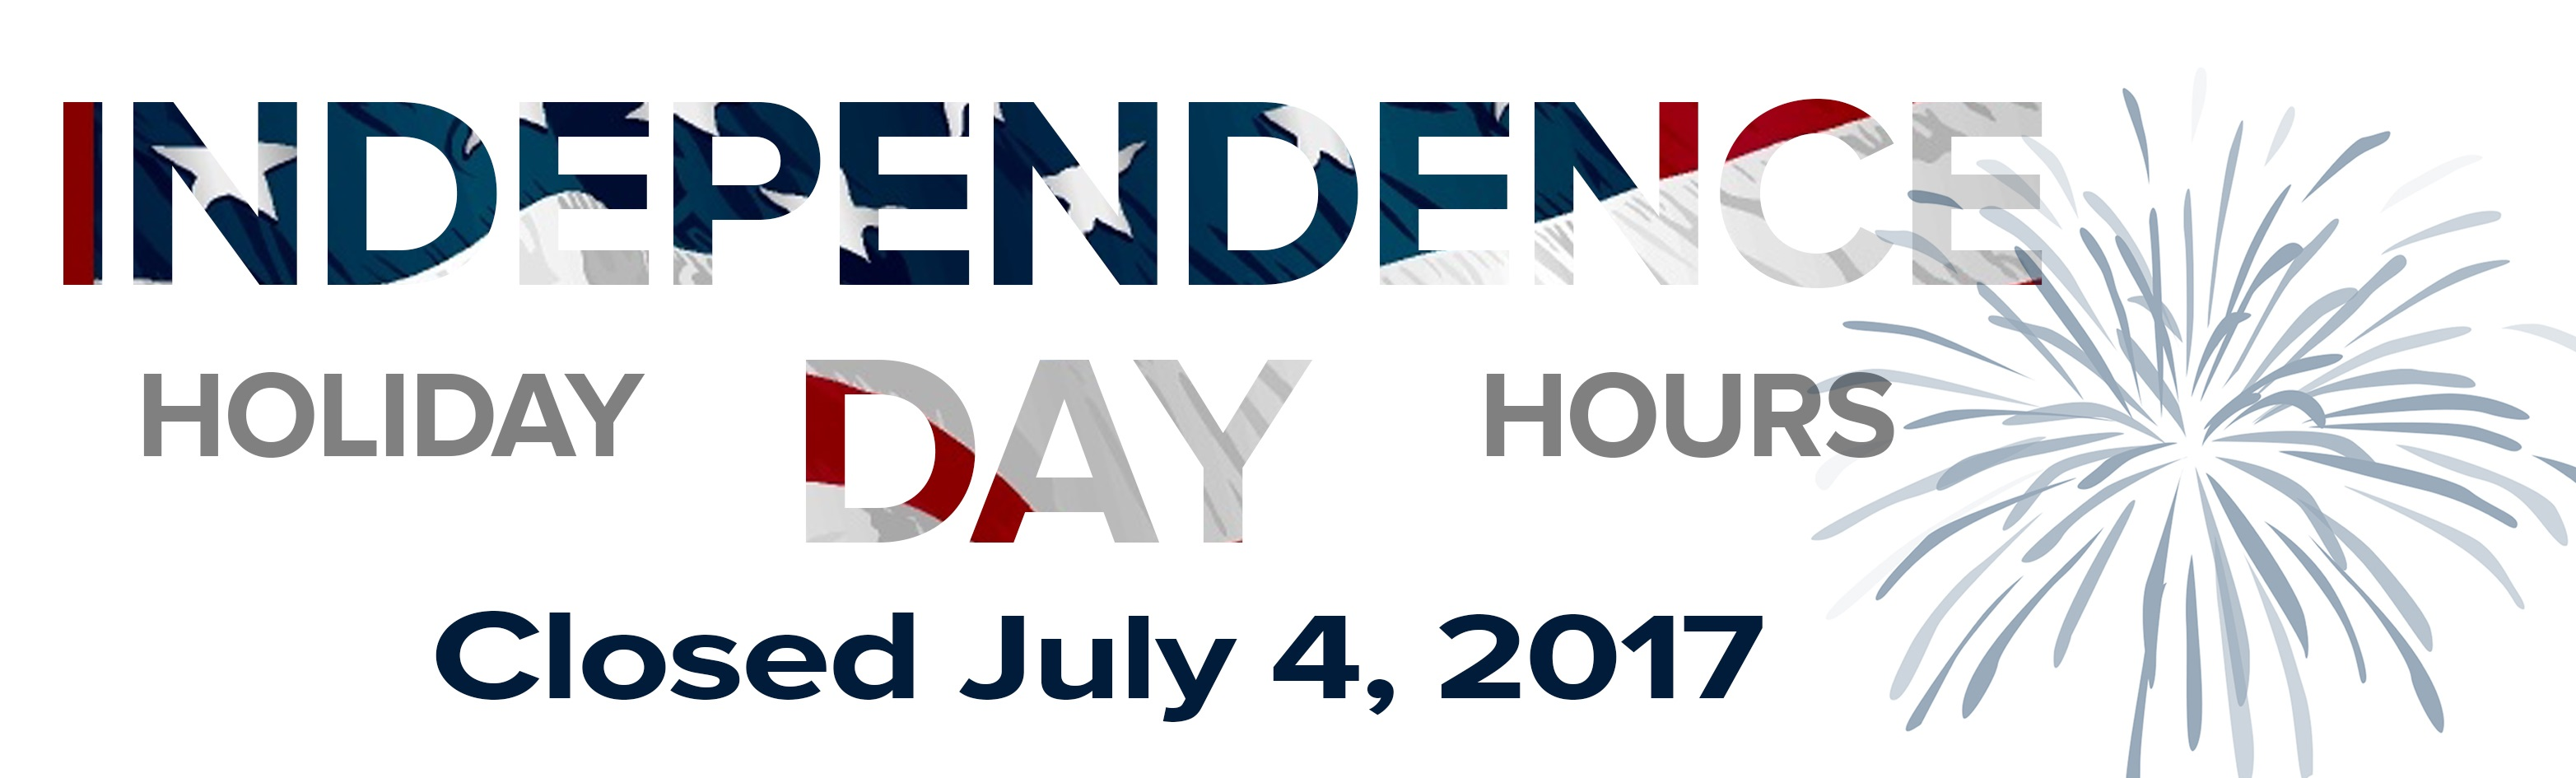 ALL OFFICES CLOSED - Independence Day